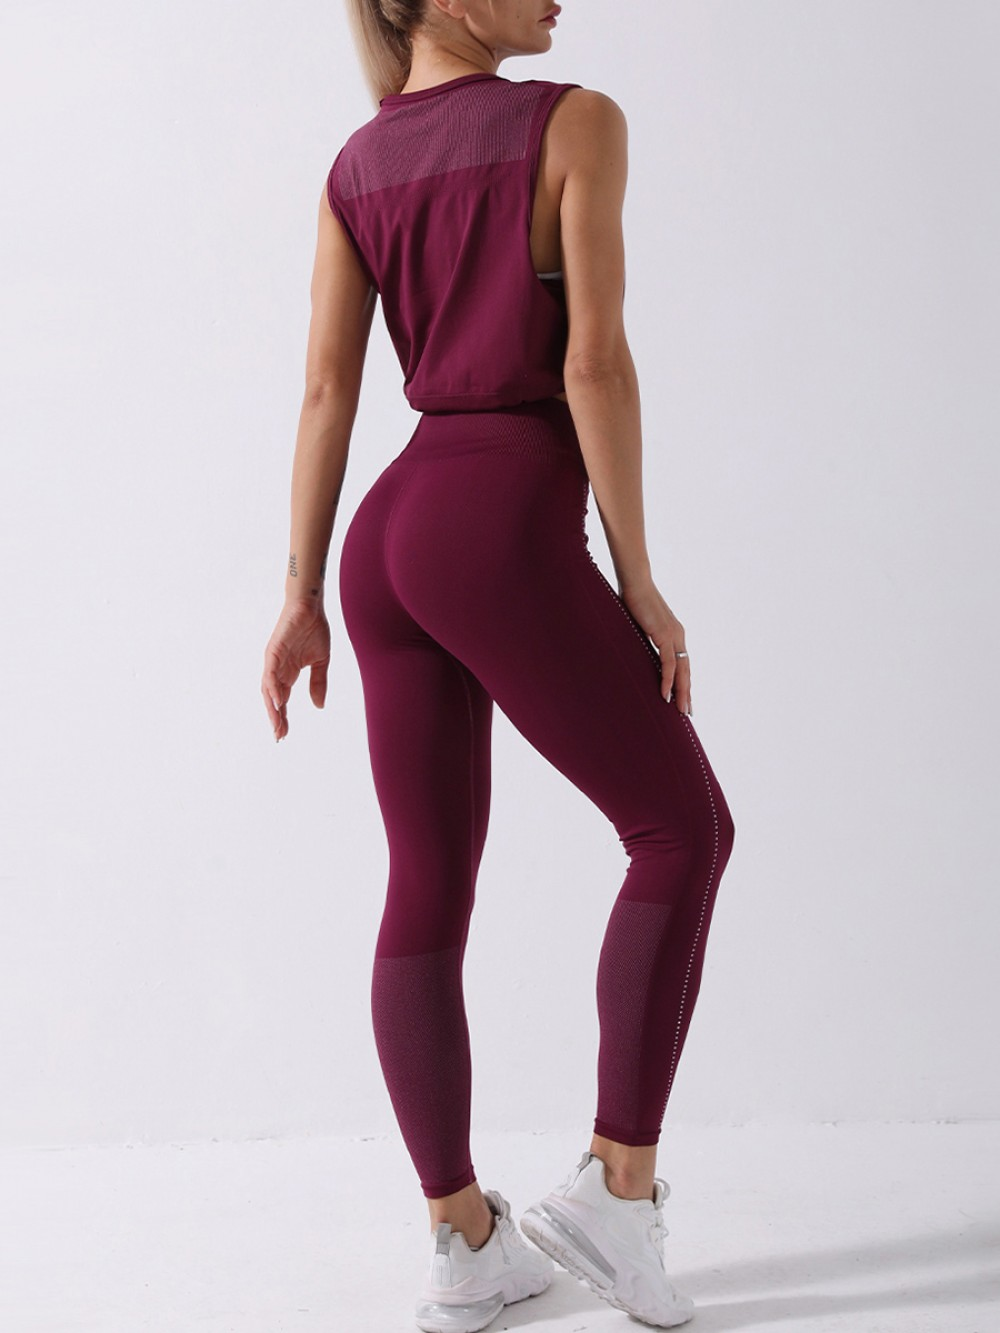 Purple Round Collar High Waist Athletic Suit For Running